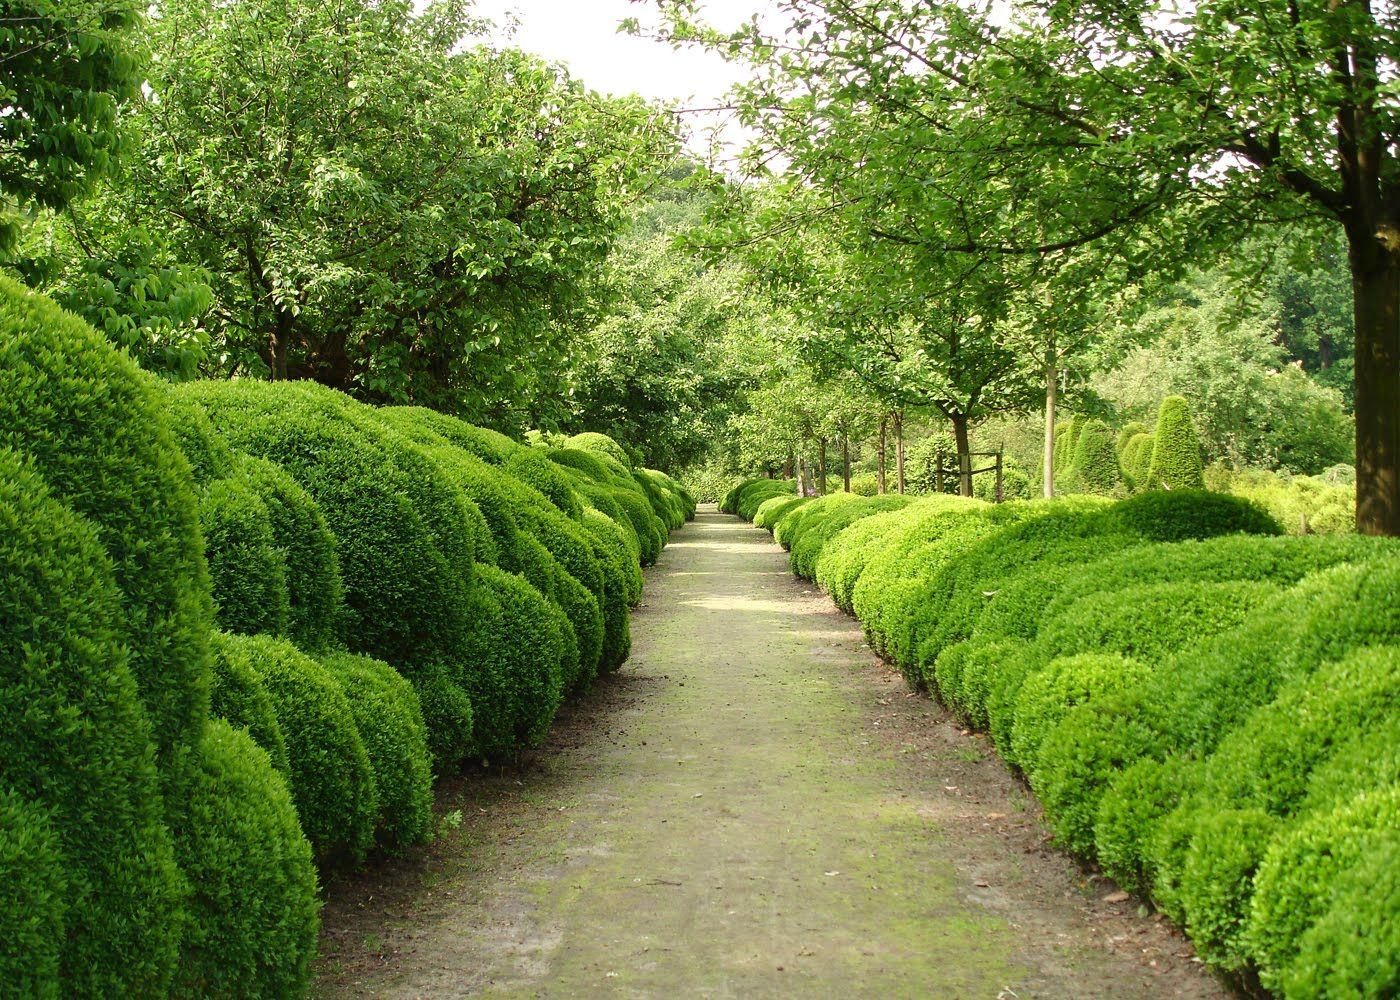 Belgian garden designer Jacques Wirtz' famous cloud boxwood hedging. Perfection.